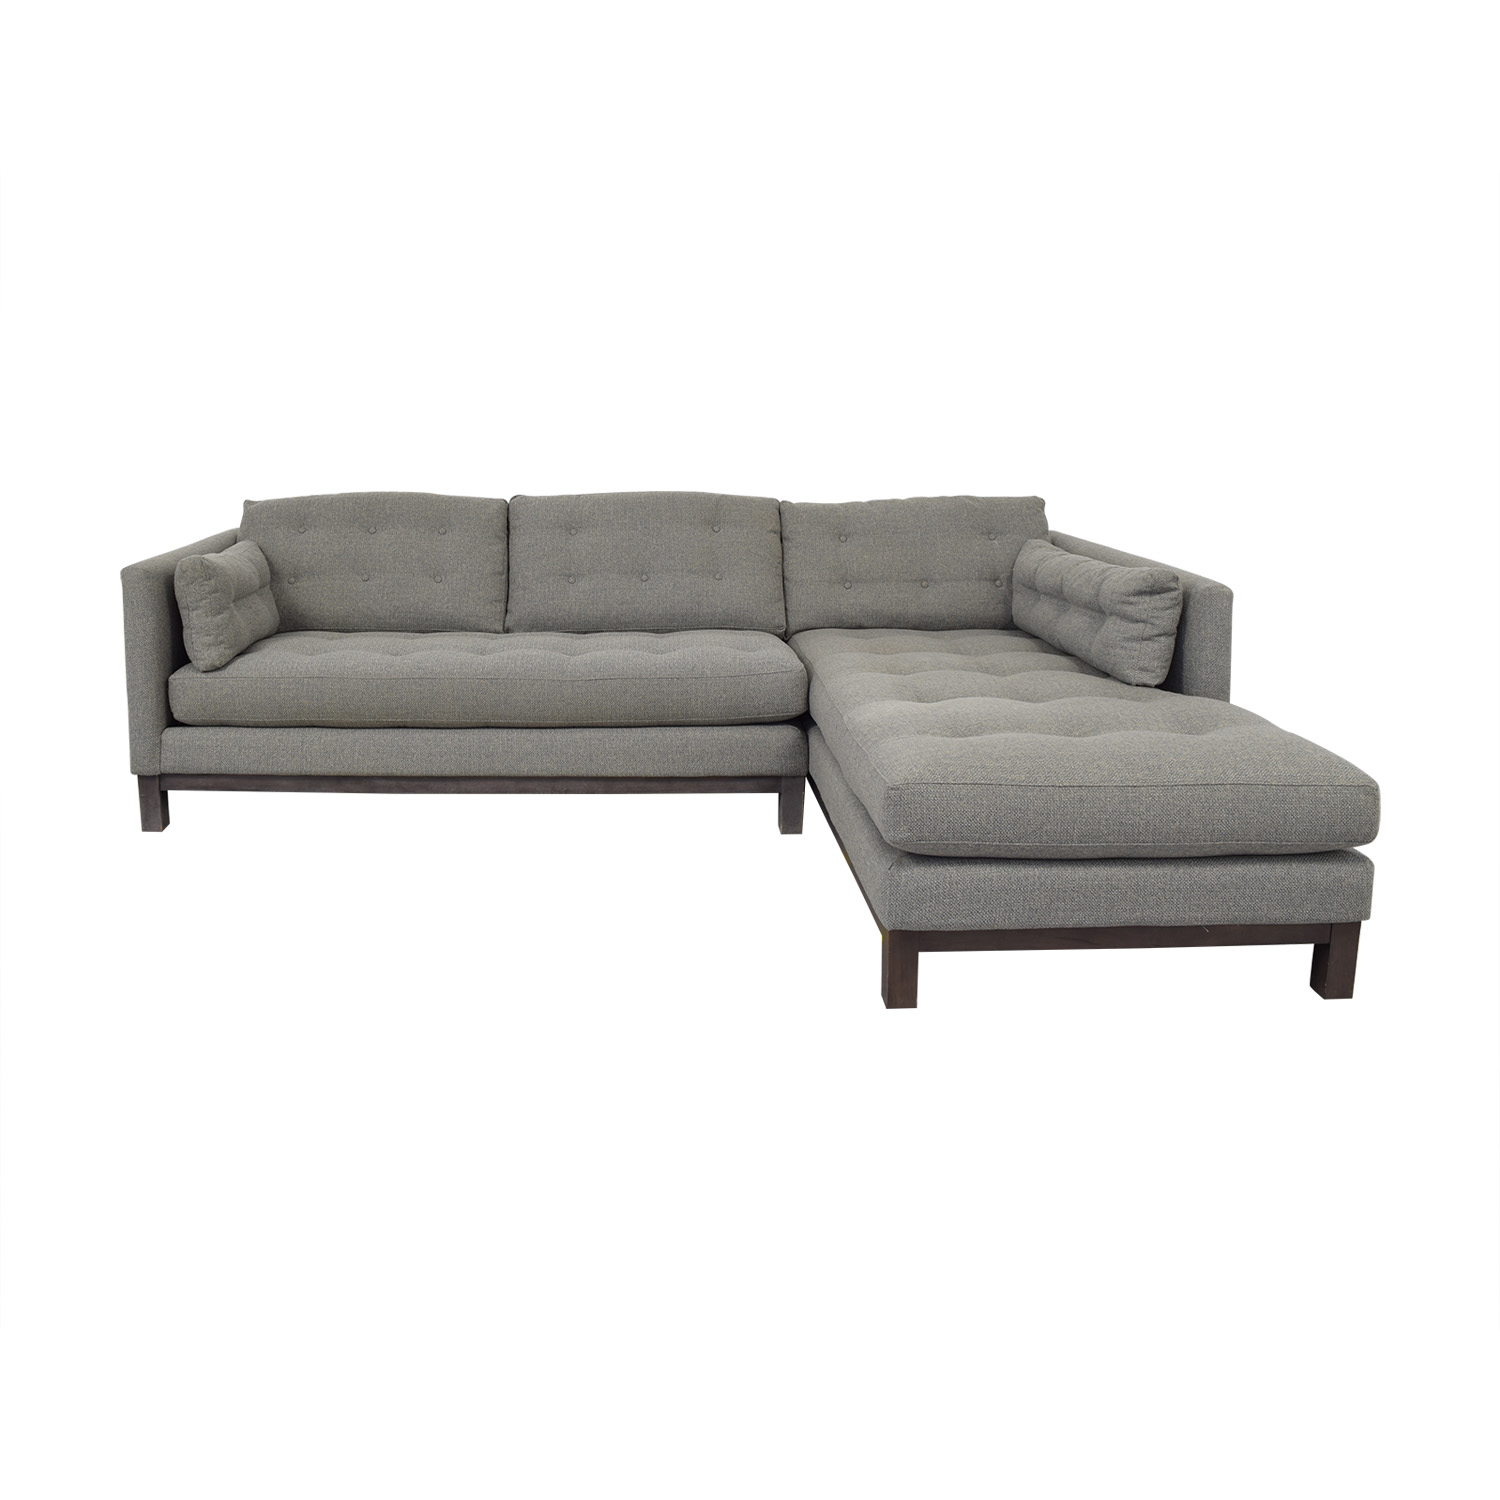 McCreary Modern McCreary Modern Sectional Chaise Sofa price